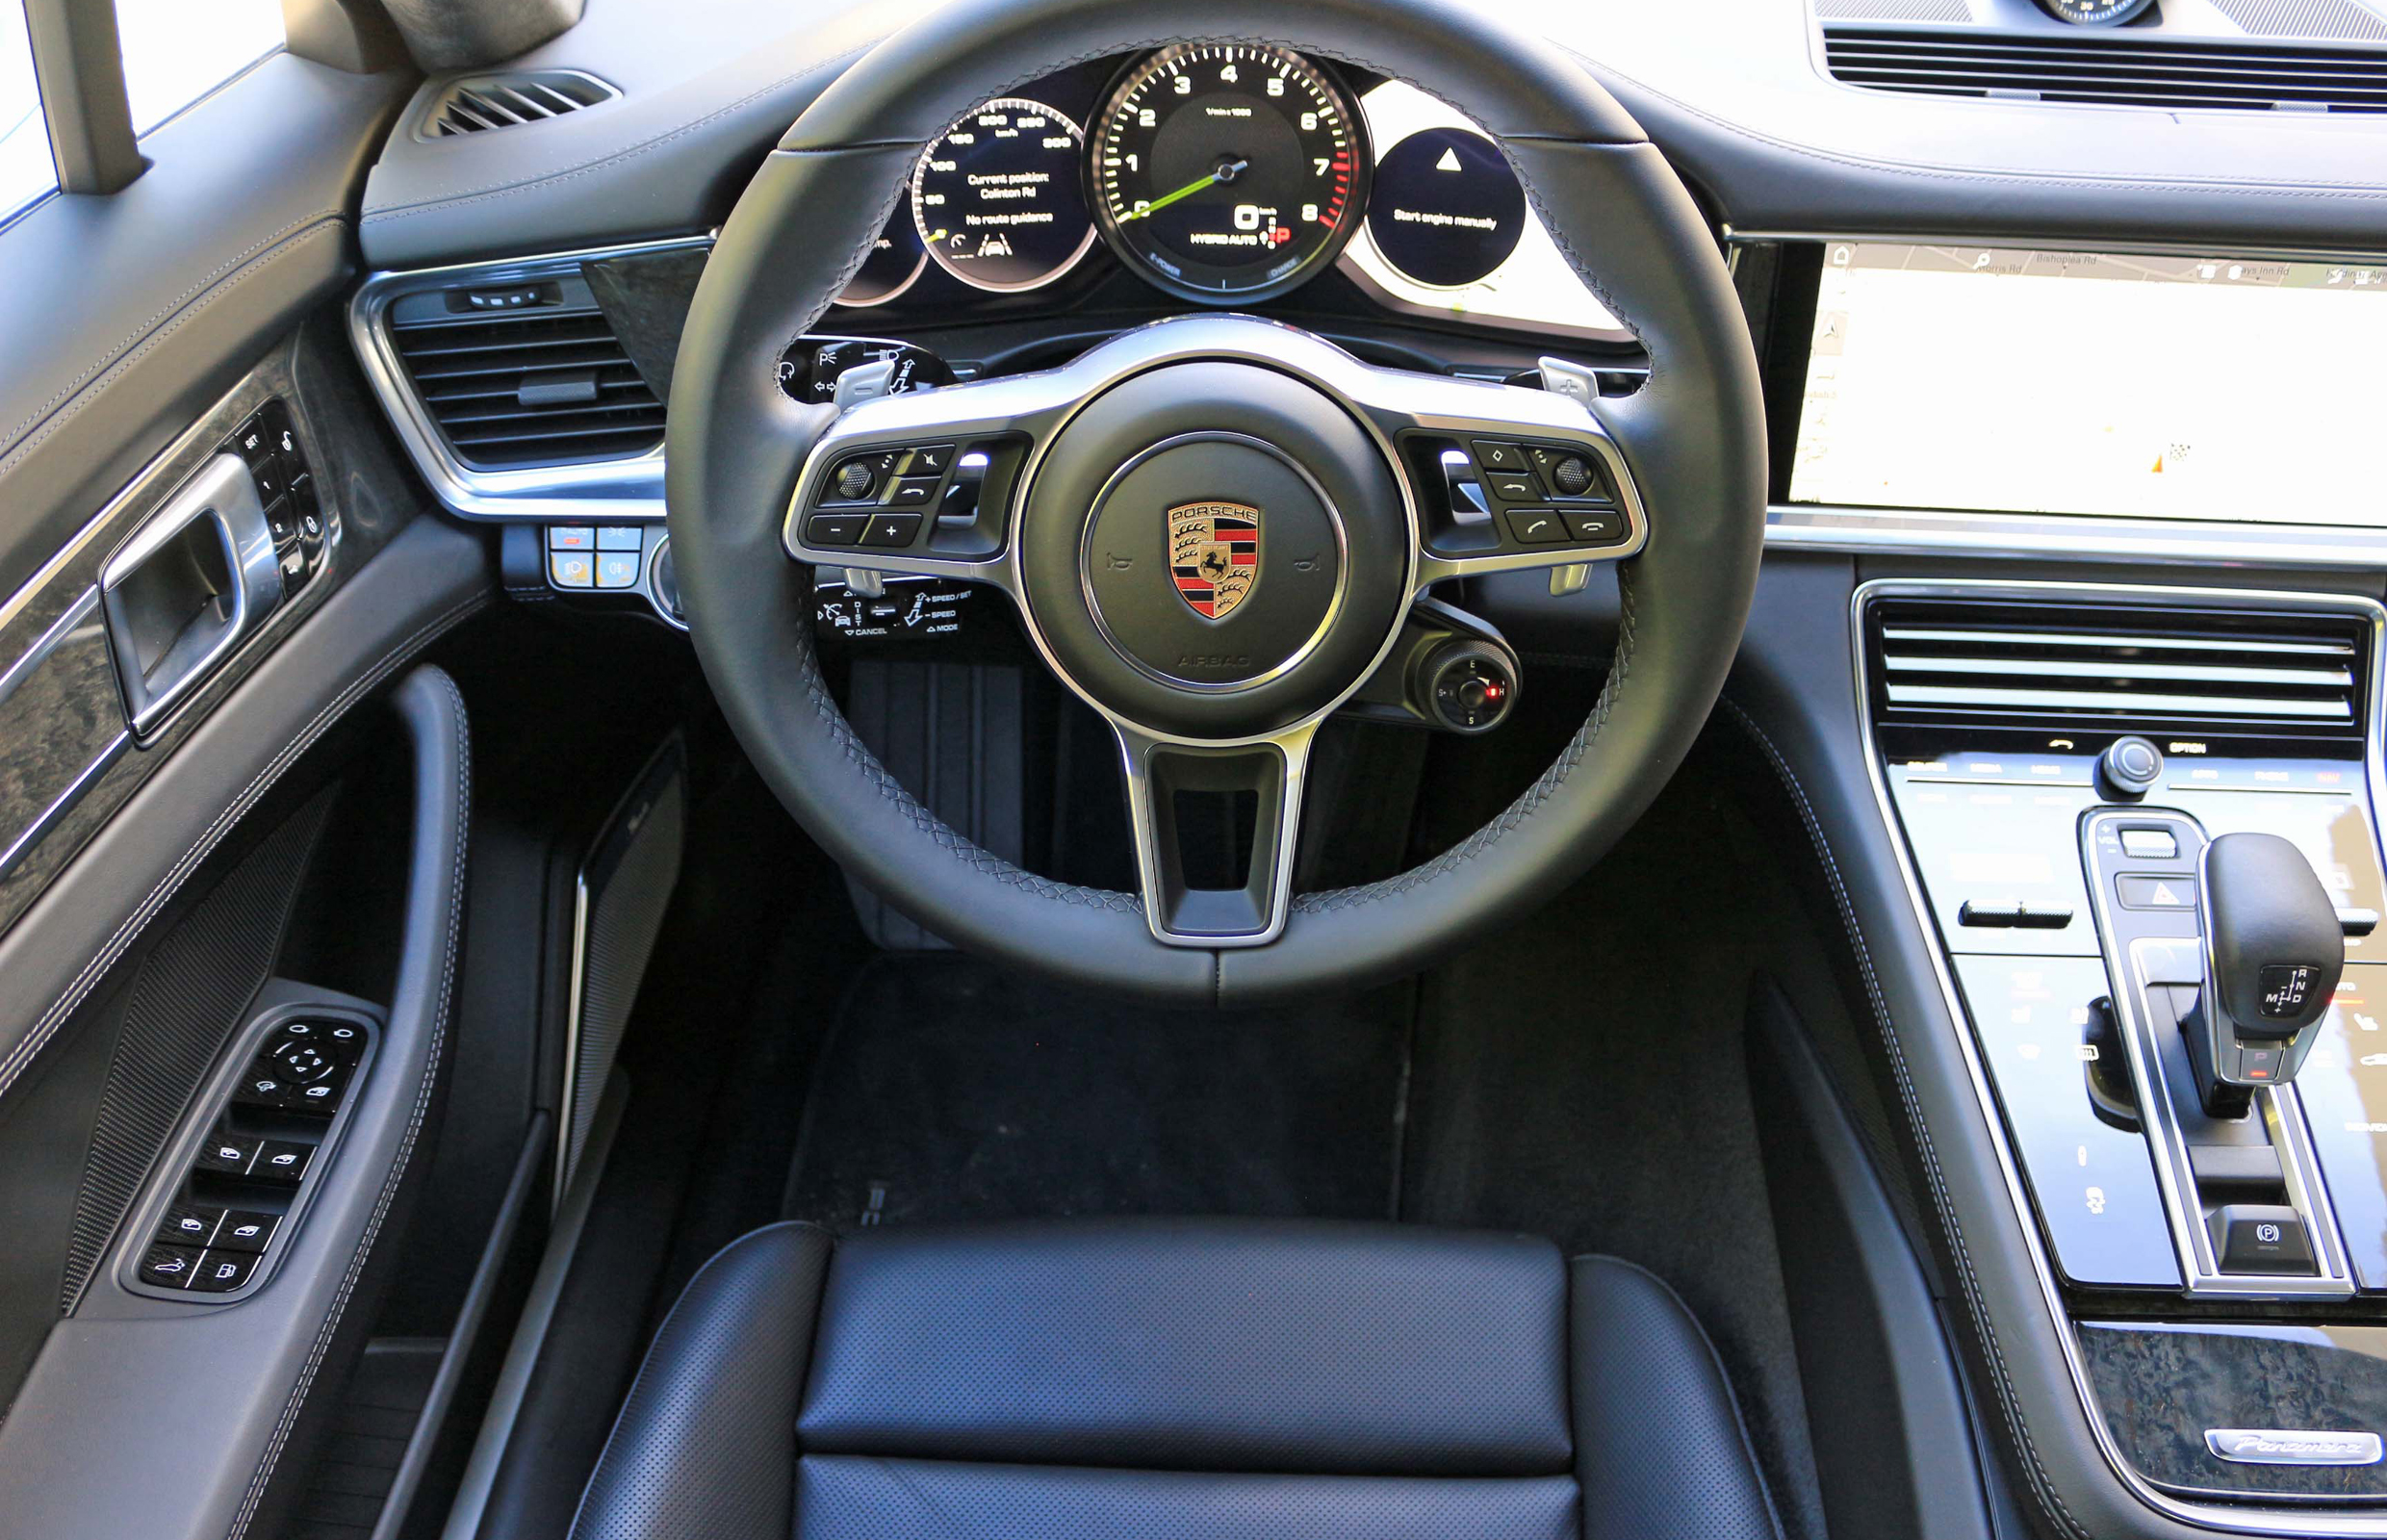 2018 Porsche Panamera 4 E Hybrid Interior Cockpit (View 3 of 10)